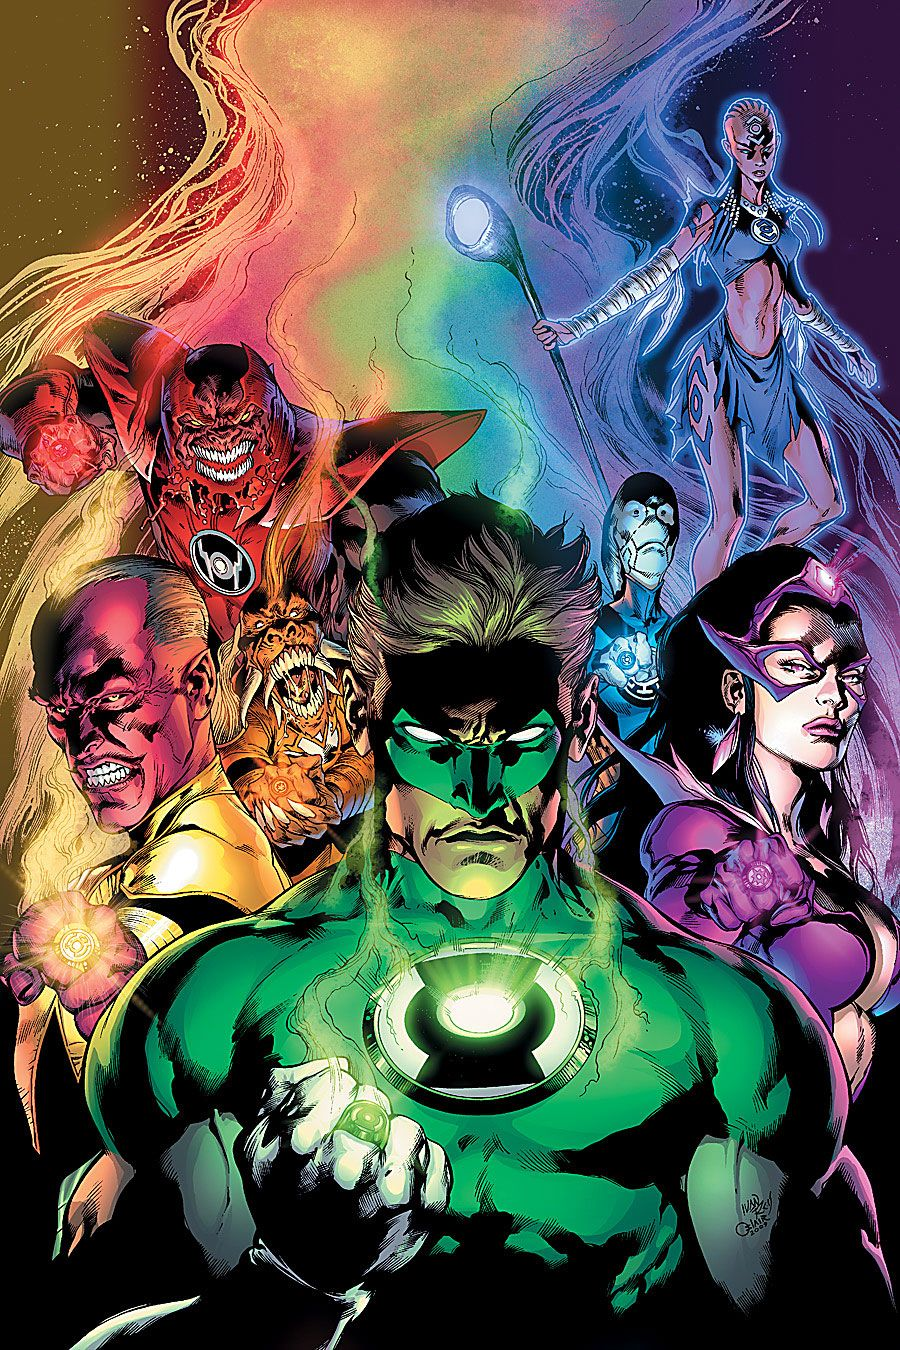 Marcha mala imponer Misión  BLACKEST NIGHT #6 | Dc comics art, Green lantern blackest night, Comics